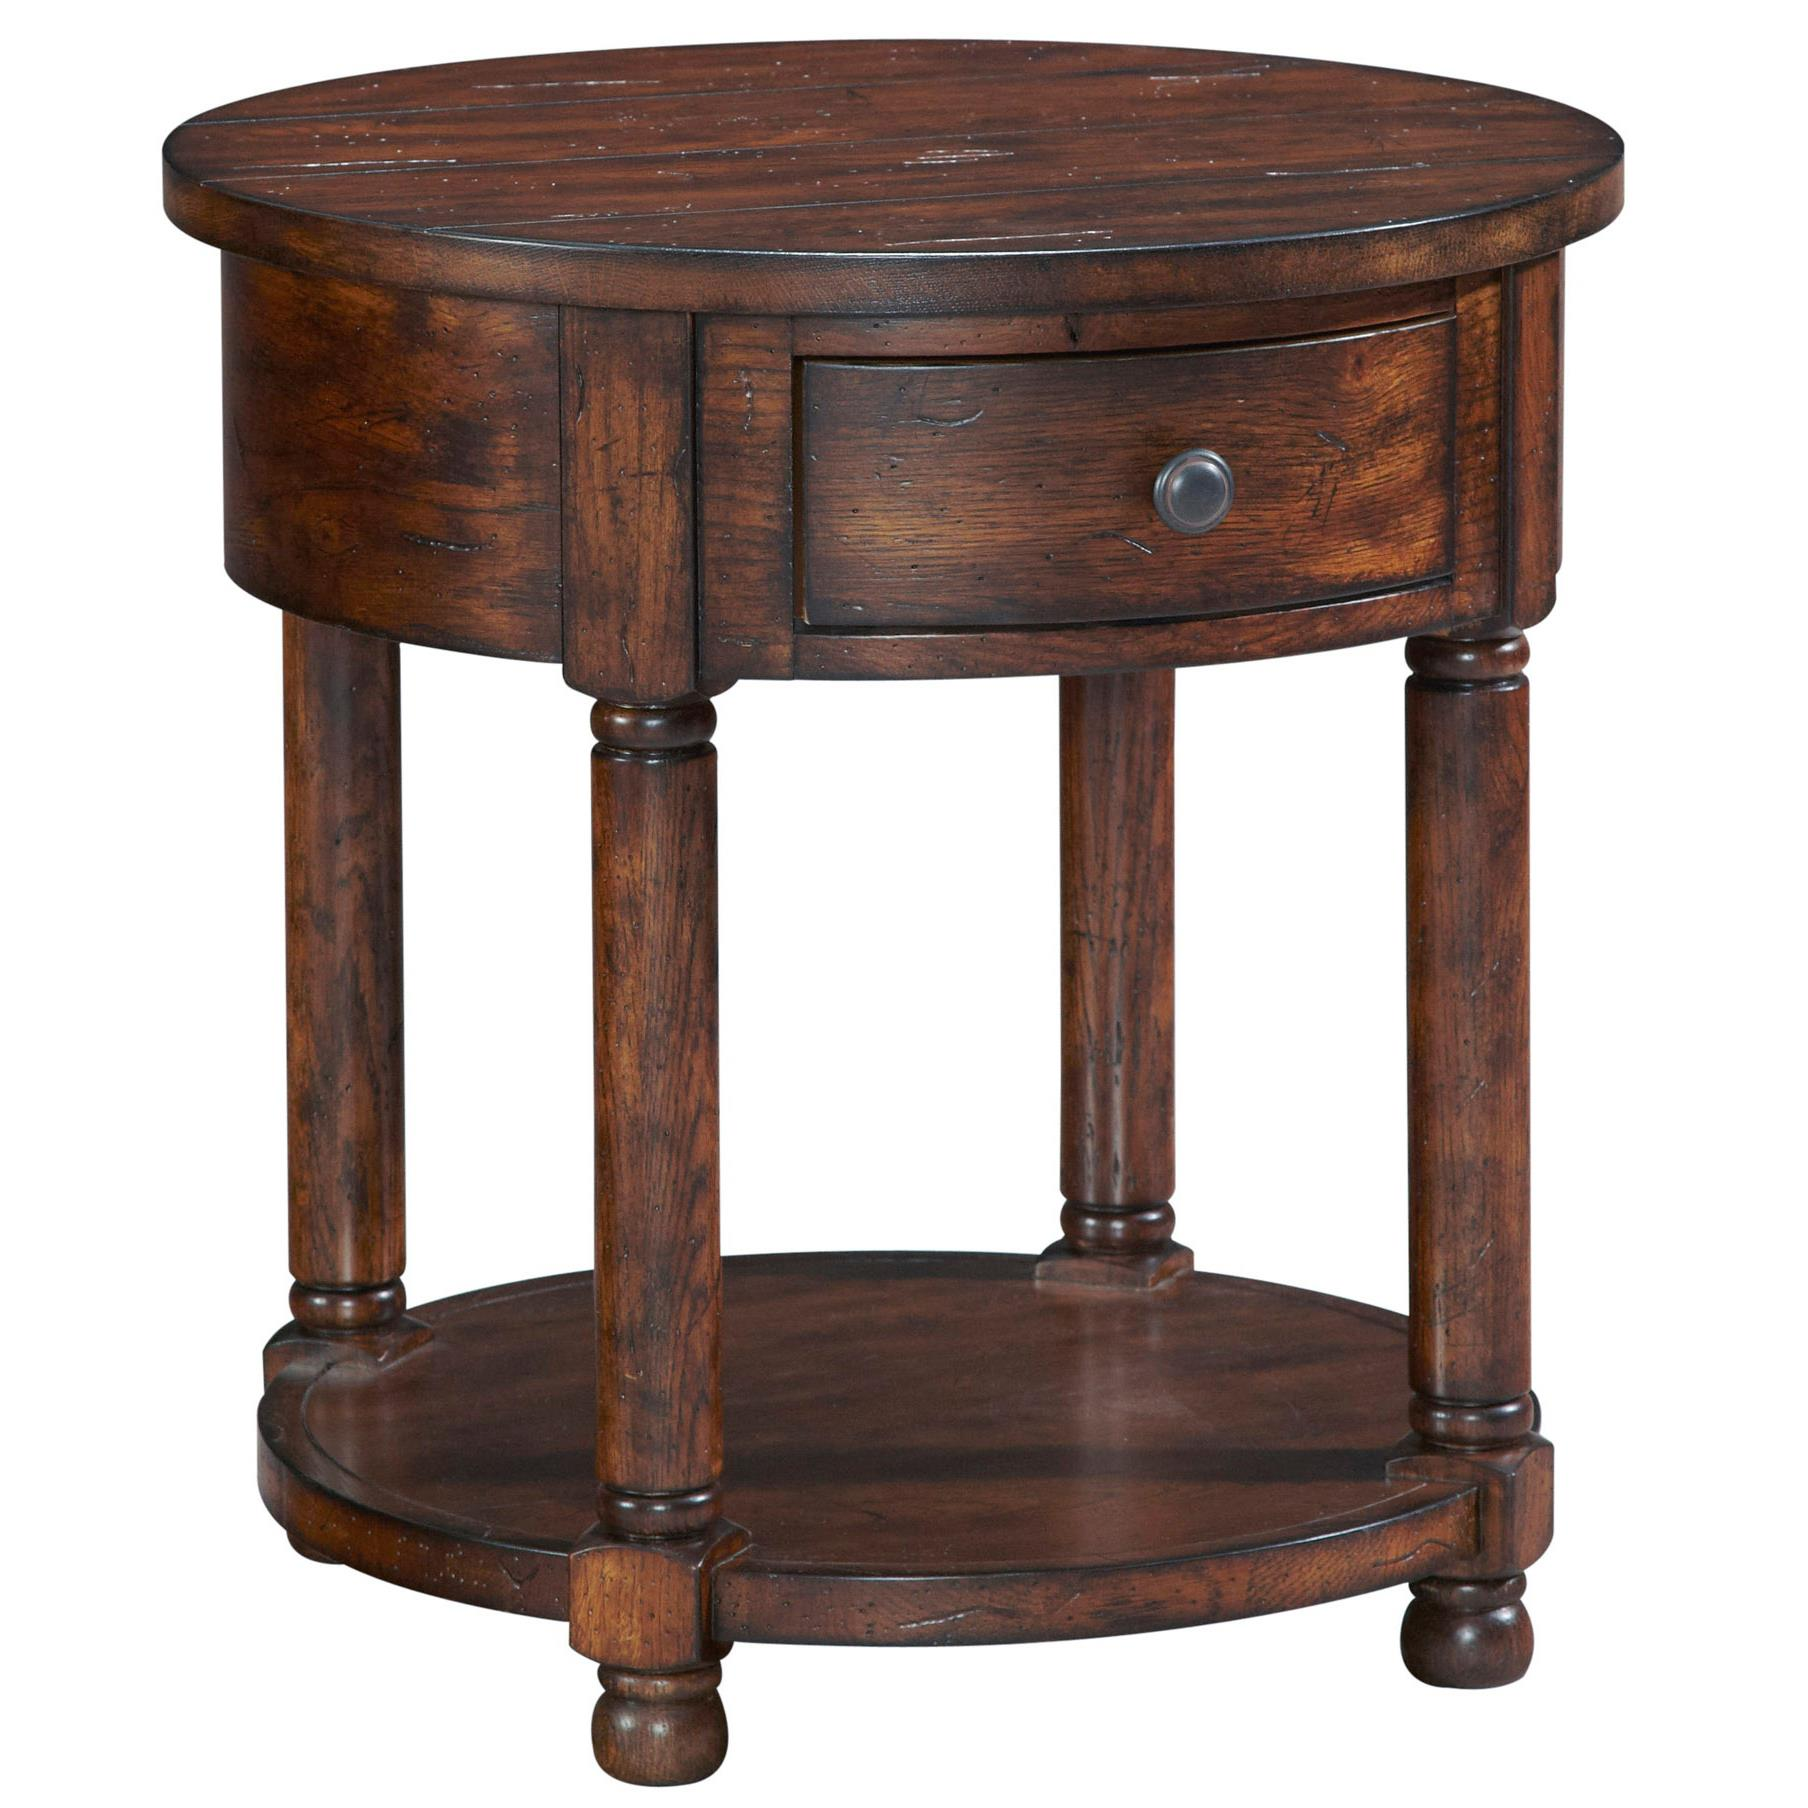 Broyhill Furniture Attic Rustic Round End Table - Item Number: 3399-012